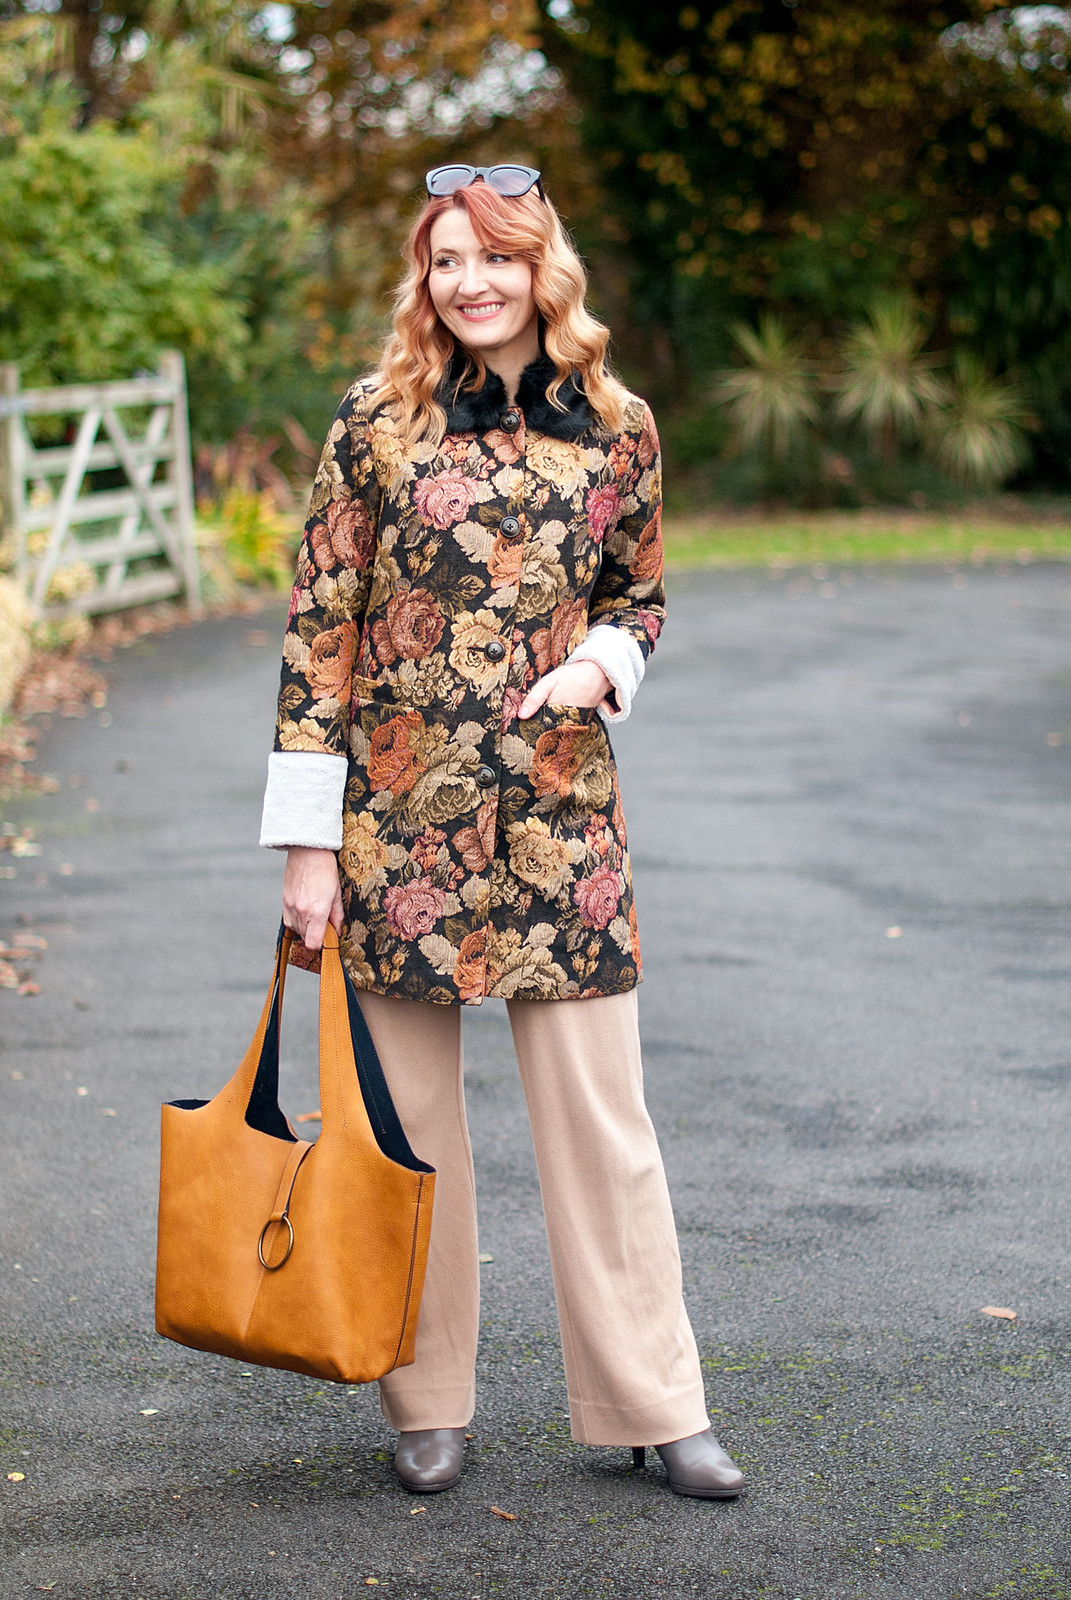 Autumn dressing, fall outfits, winter florals: Floral tapestry coat with fur collar, wide leg camel trousers, grey ankle boots | Not Dressed As Lamb, over 40 fashion